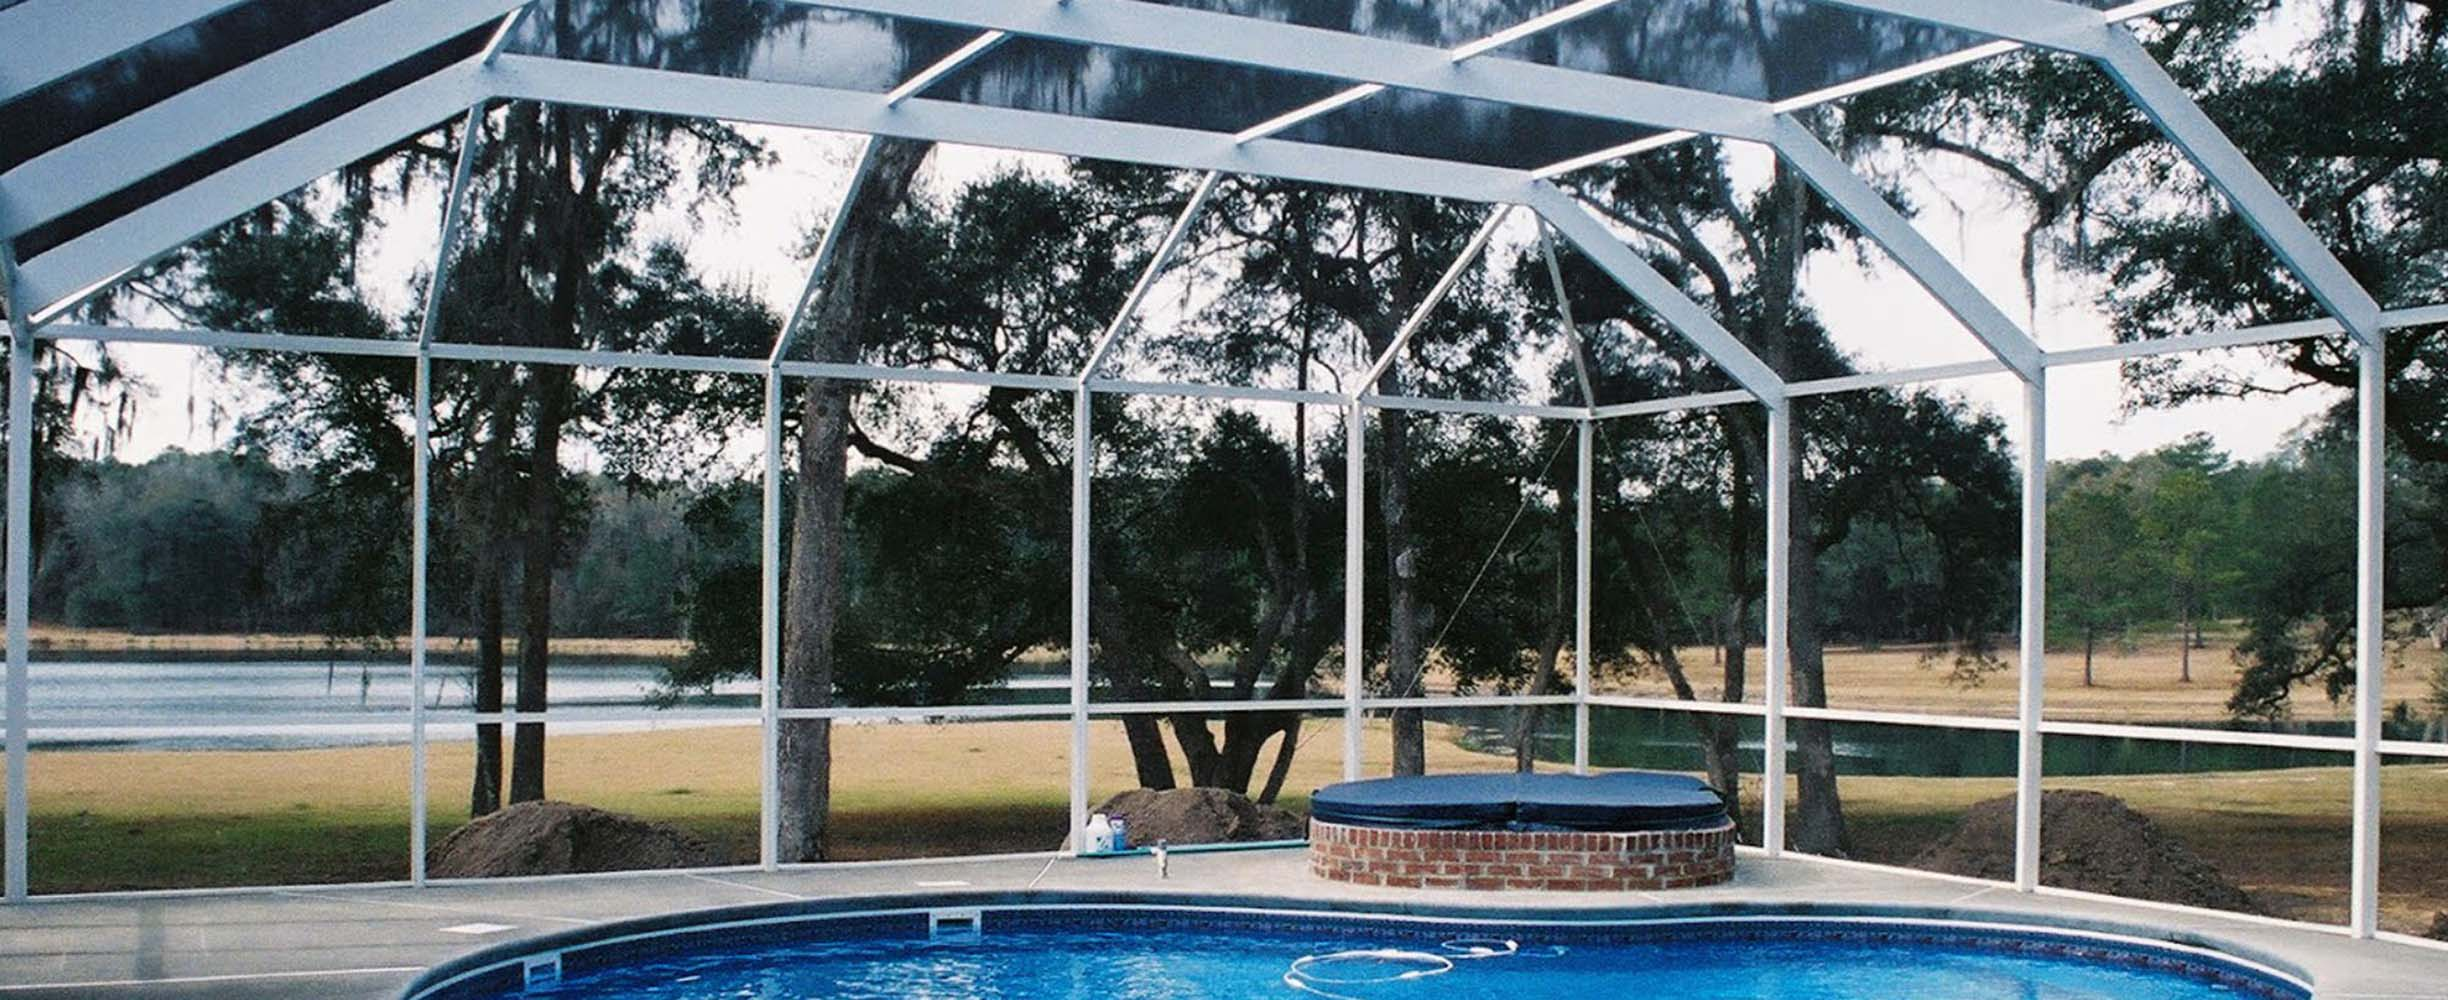 Custom pool enclosure designed to fit the pool and garden and implemented in few days and on budget